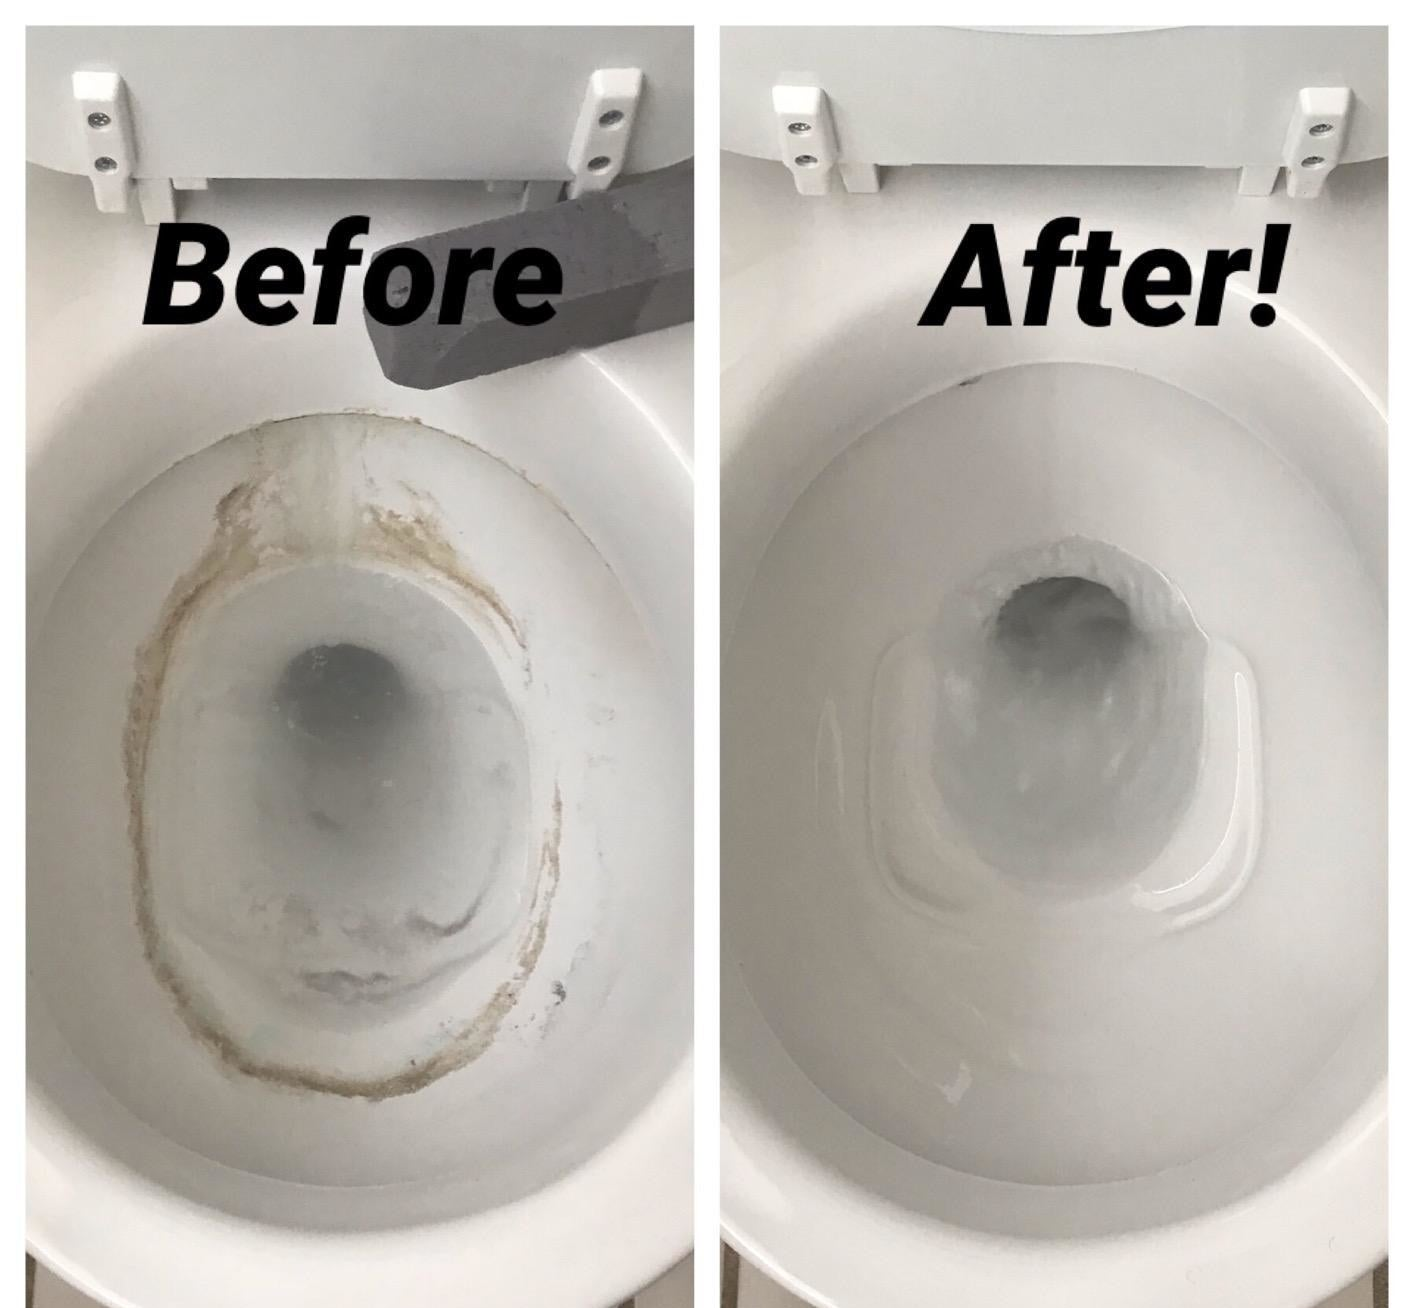 Before and after image of dirty stained toilet and completely clean toilet after using the pumice stone